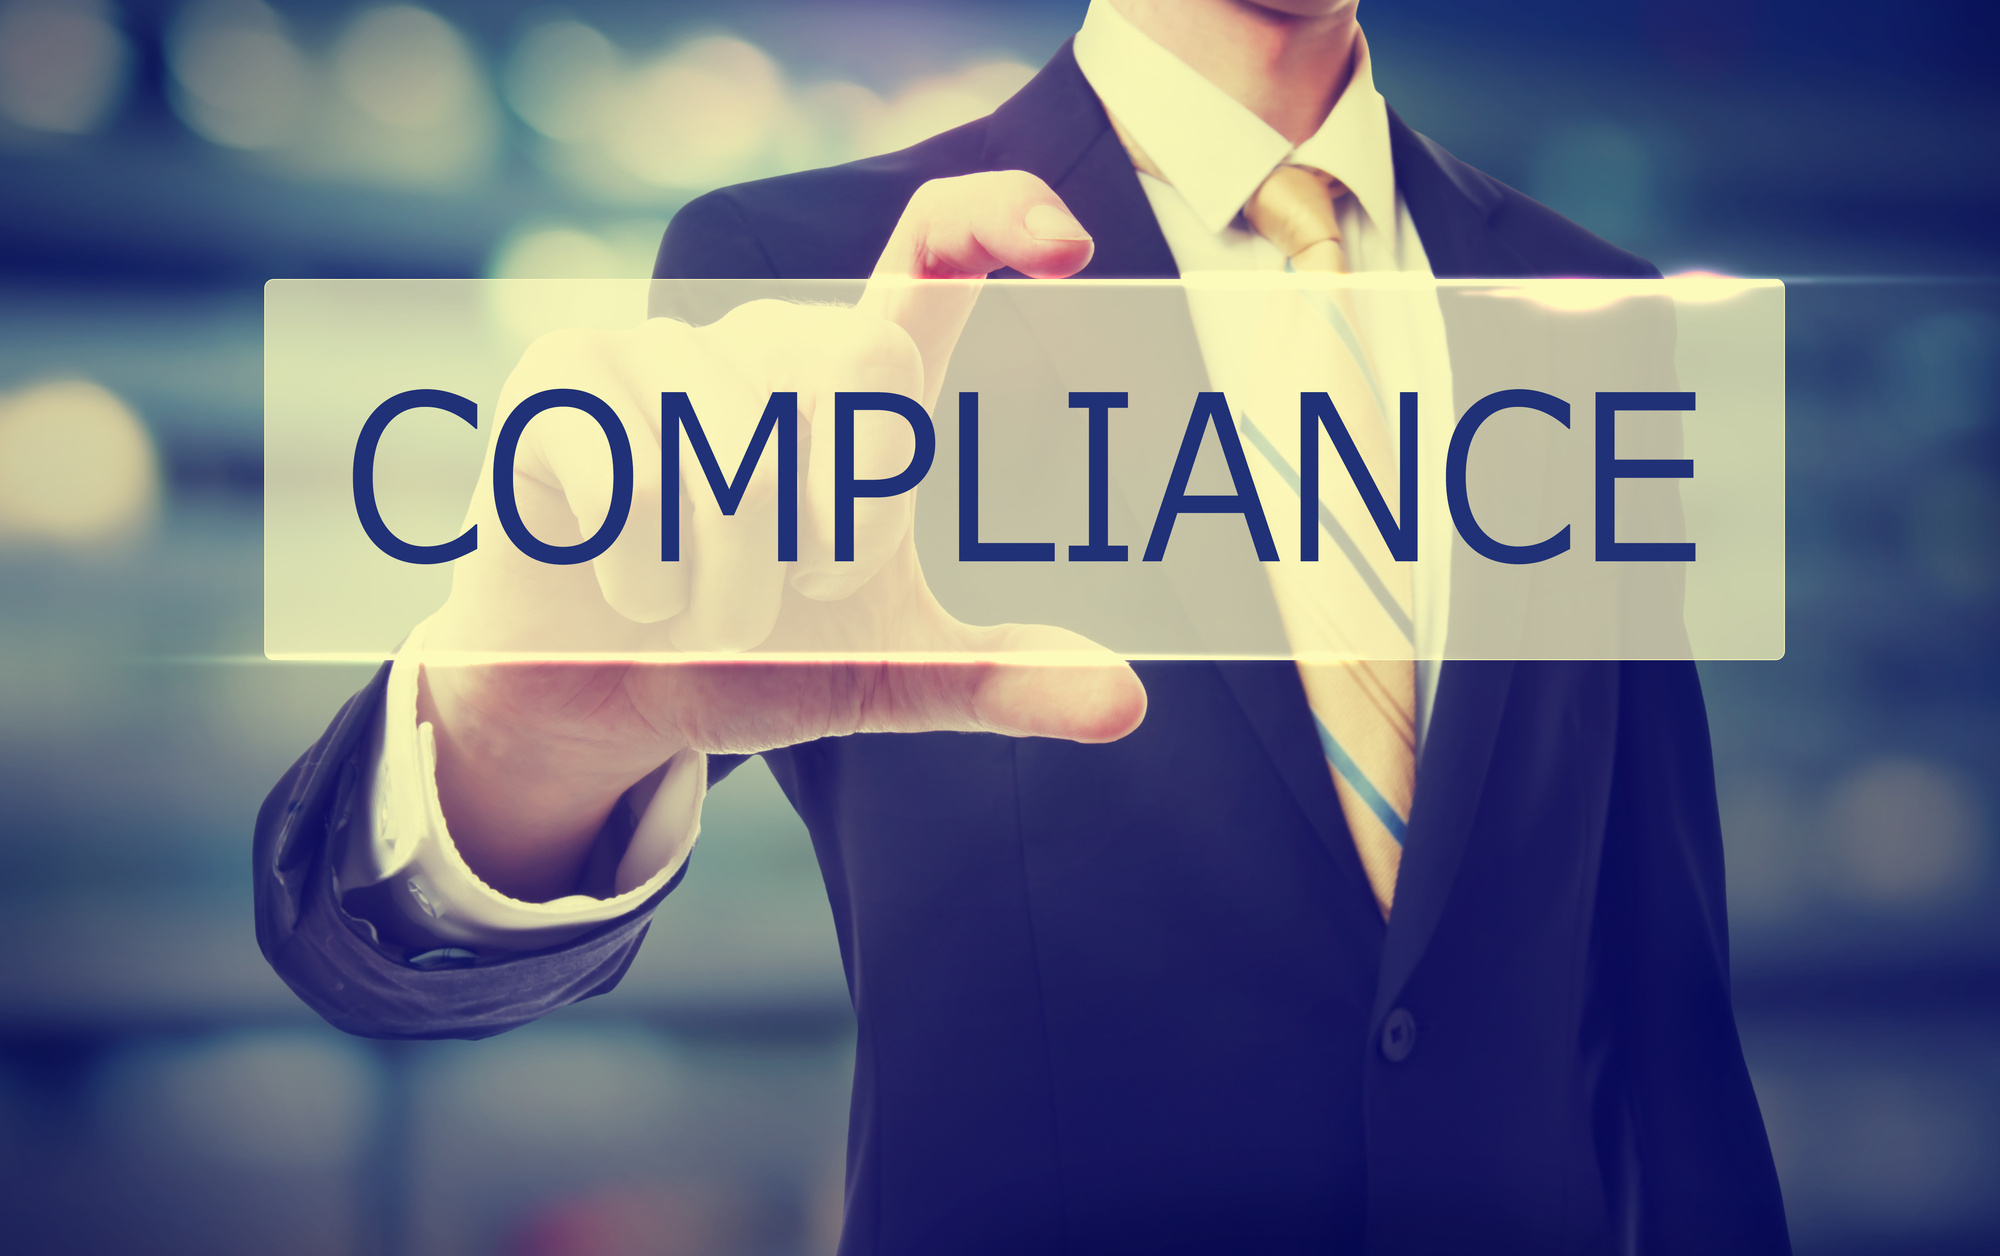 7 Compliance Management Solutions to Streamline Workplace Safety